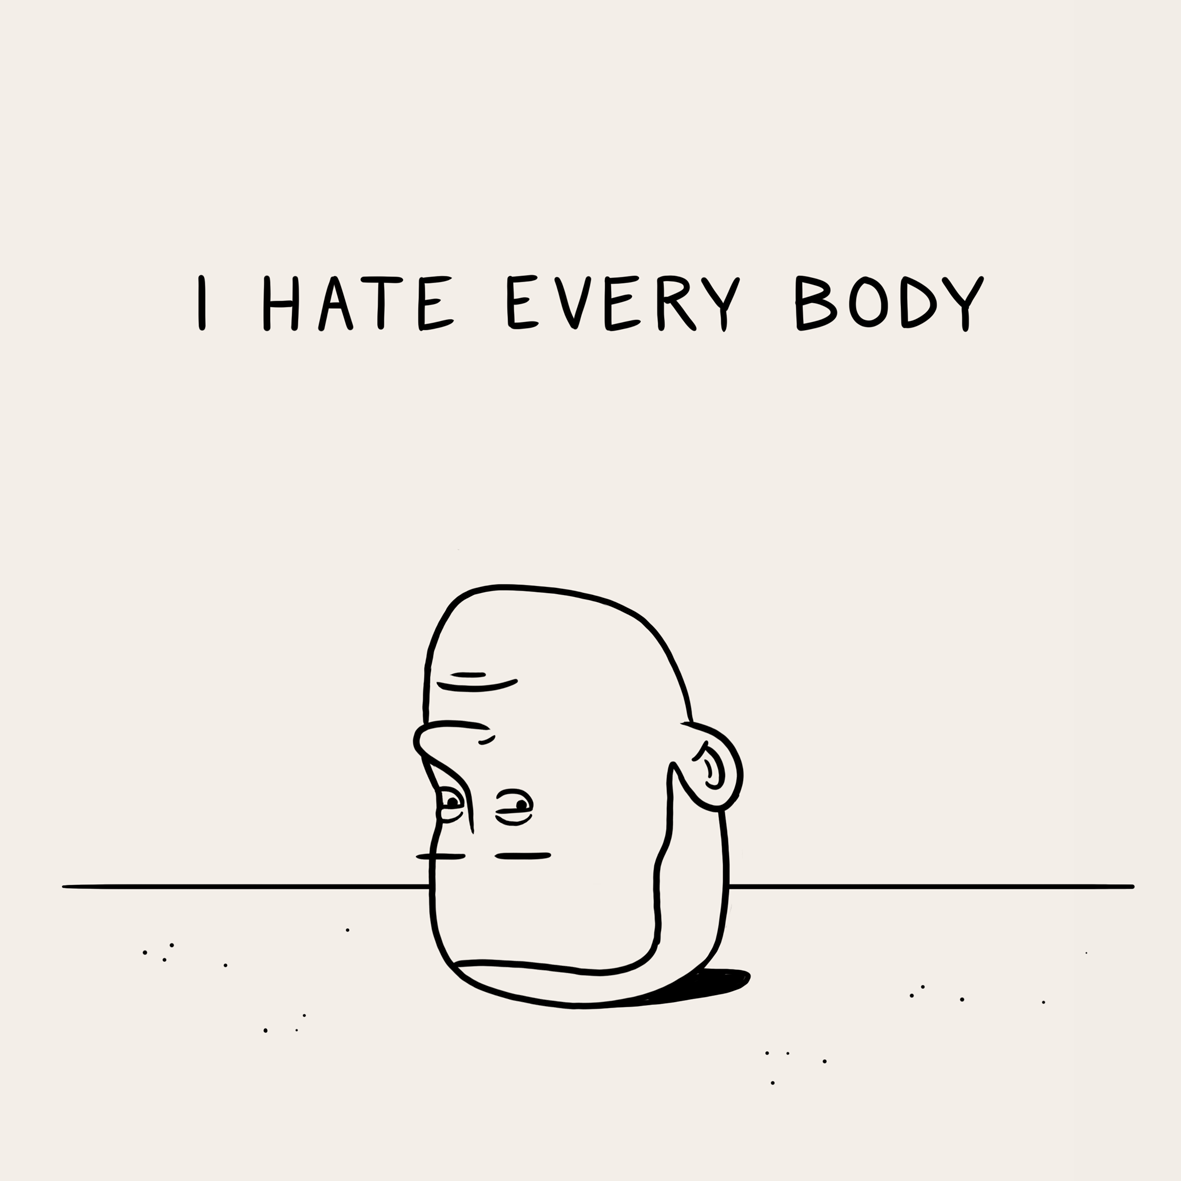 Le brillanti illustrazioni dell'artista Matt Blease | Collater.al 23